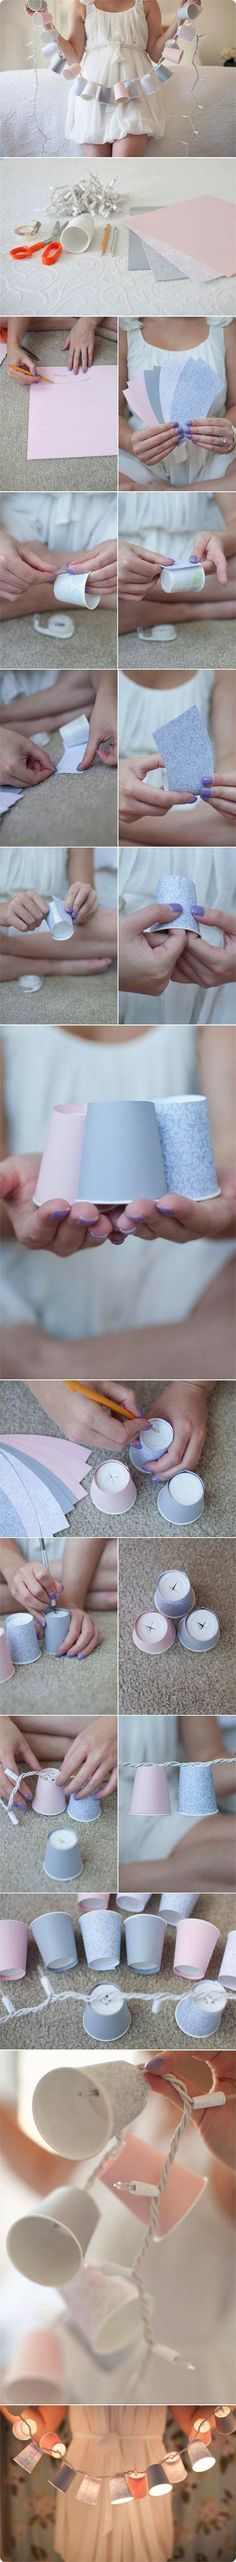 Found this on another site - indulgy. You create custom paper cups then put white christmas lights inside. - SO cute! CANDLE CUPS by Karina Sarmiento Reyes